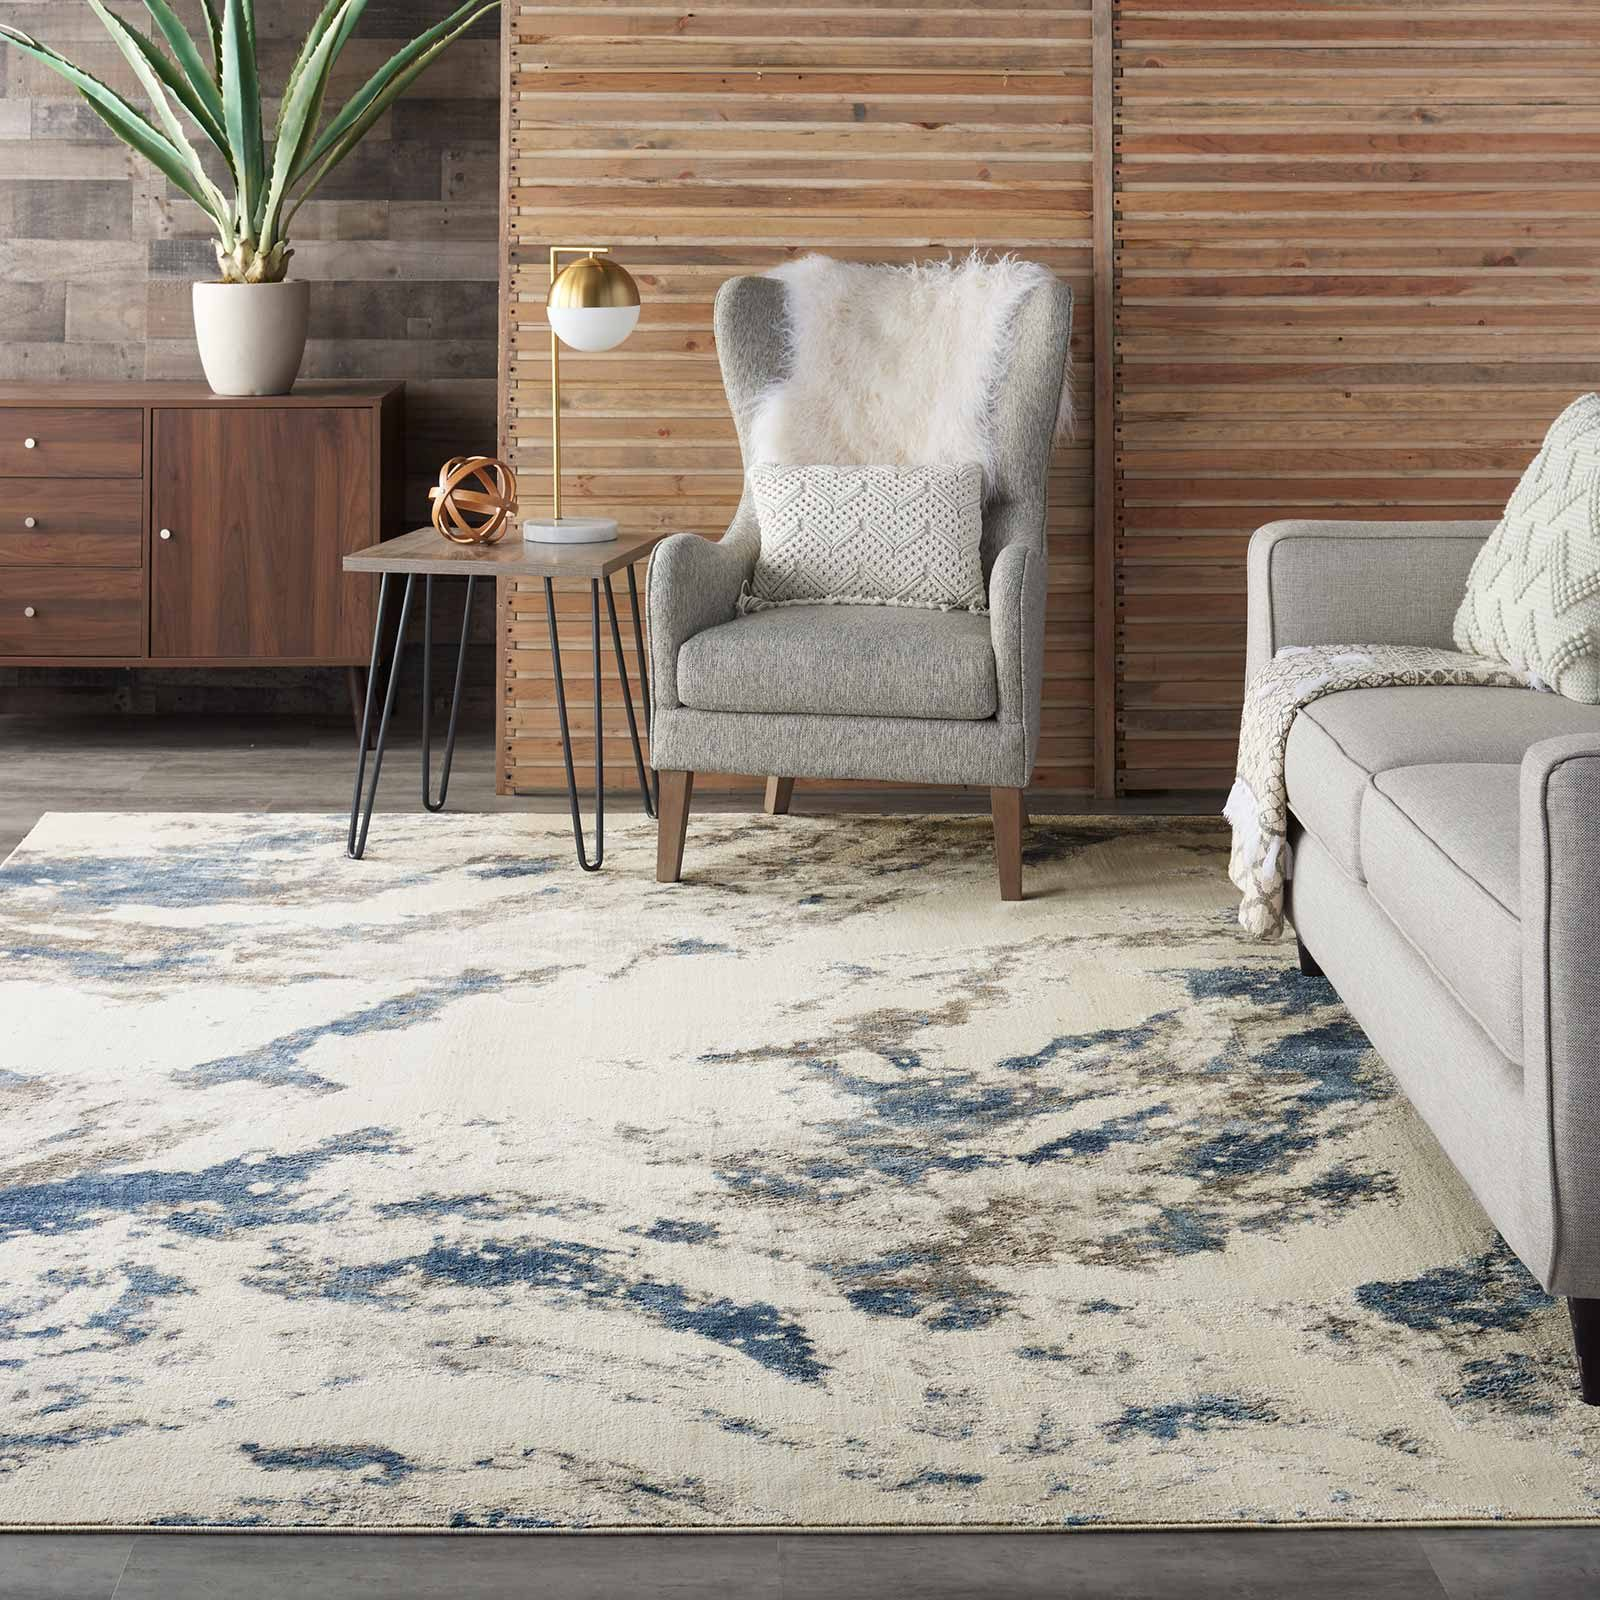 Nourison rug Silky Textures SLY03 BLUE IVORY GREY 8x11 099446710109 interior 1